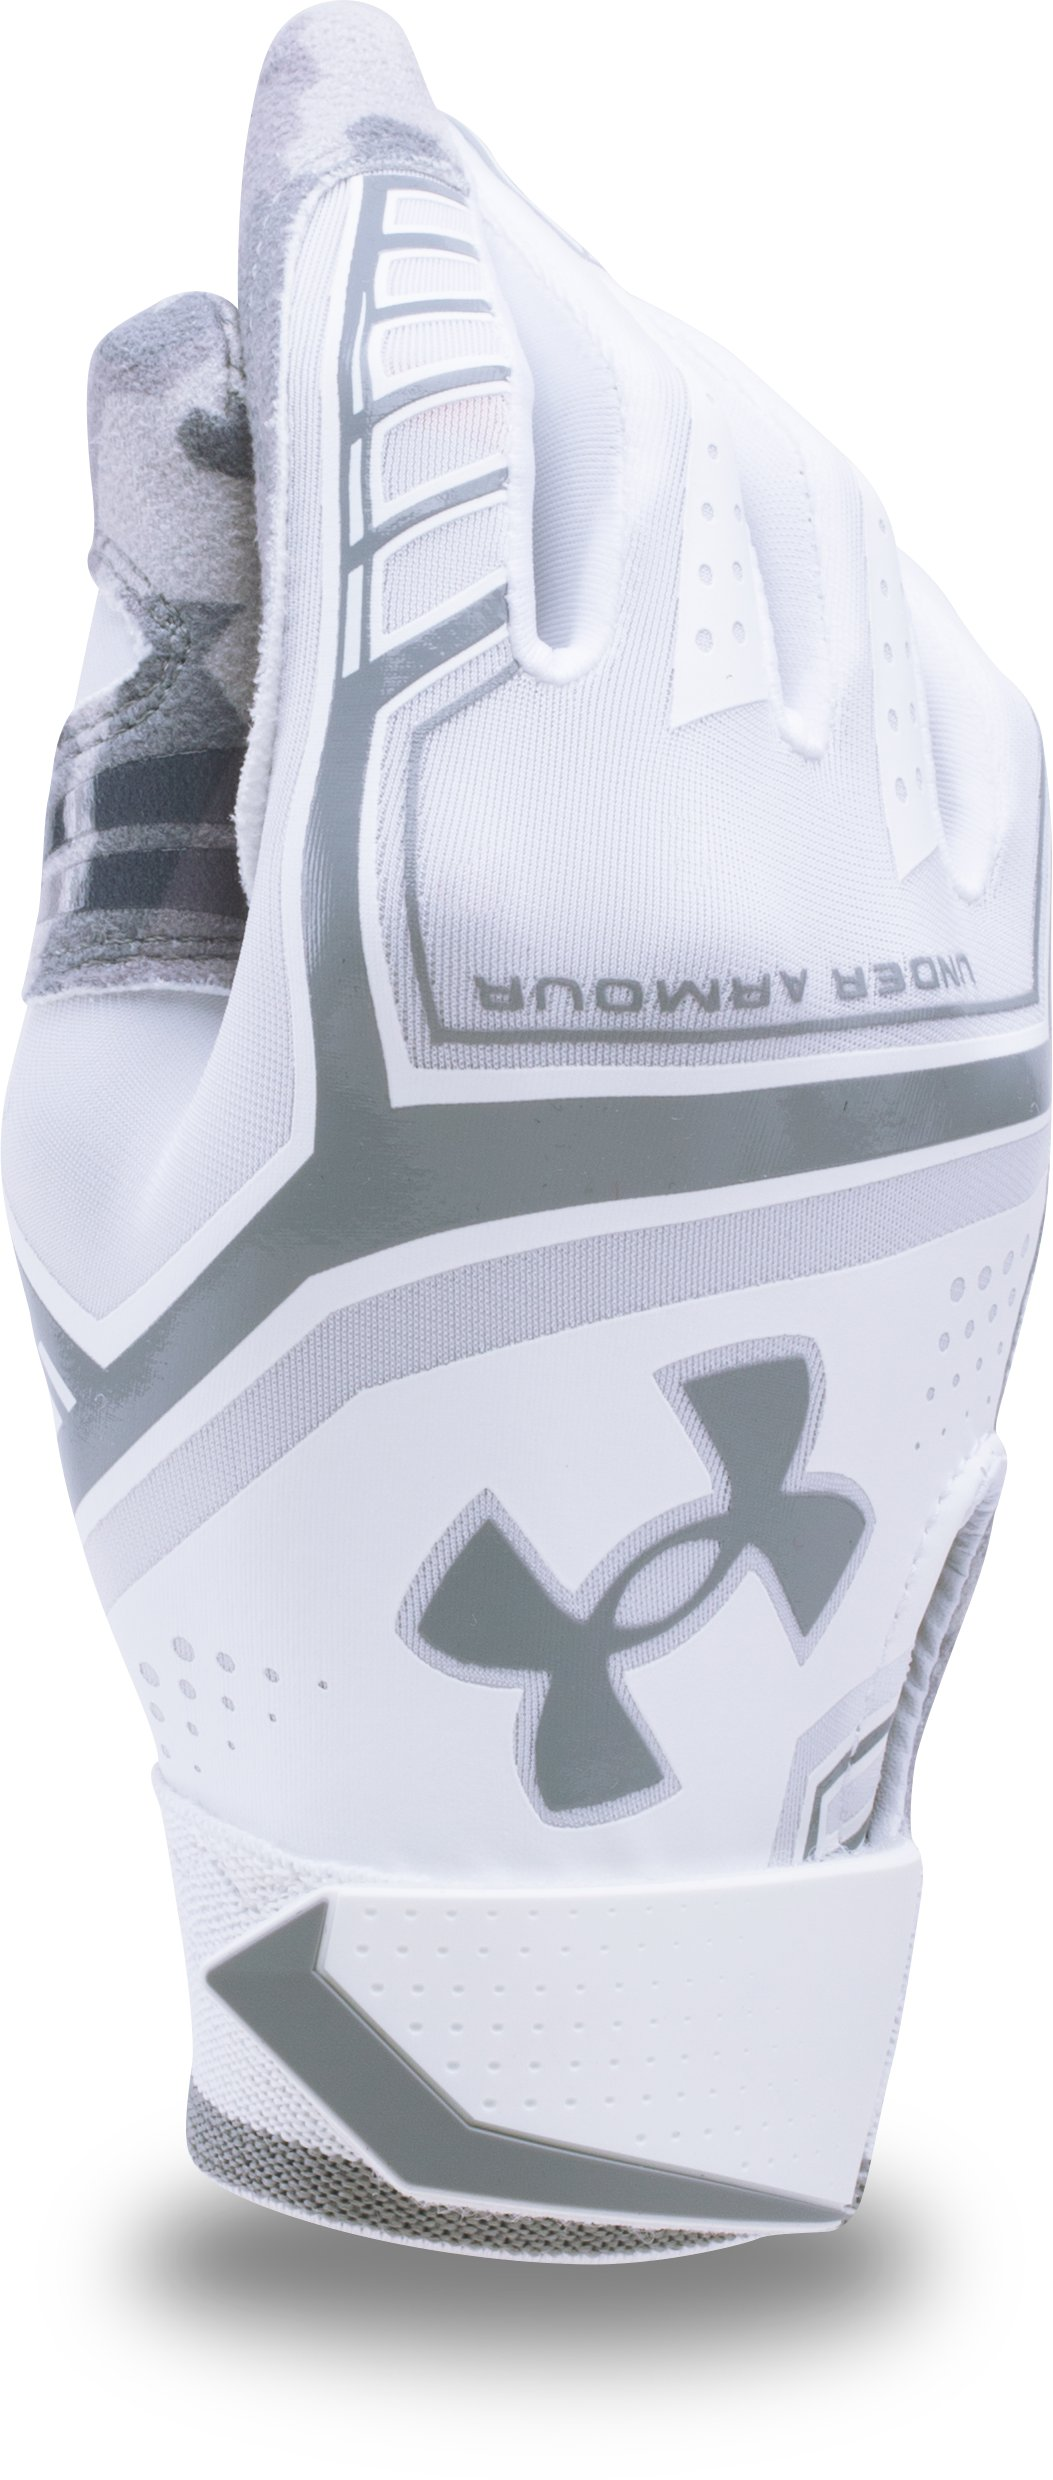 Boys' UA Heater Batting Gloves, White